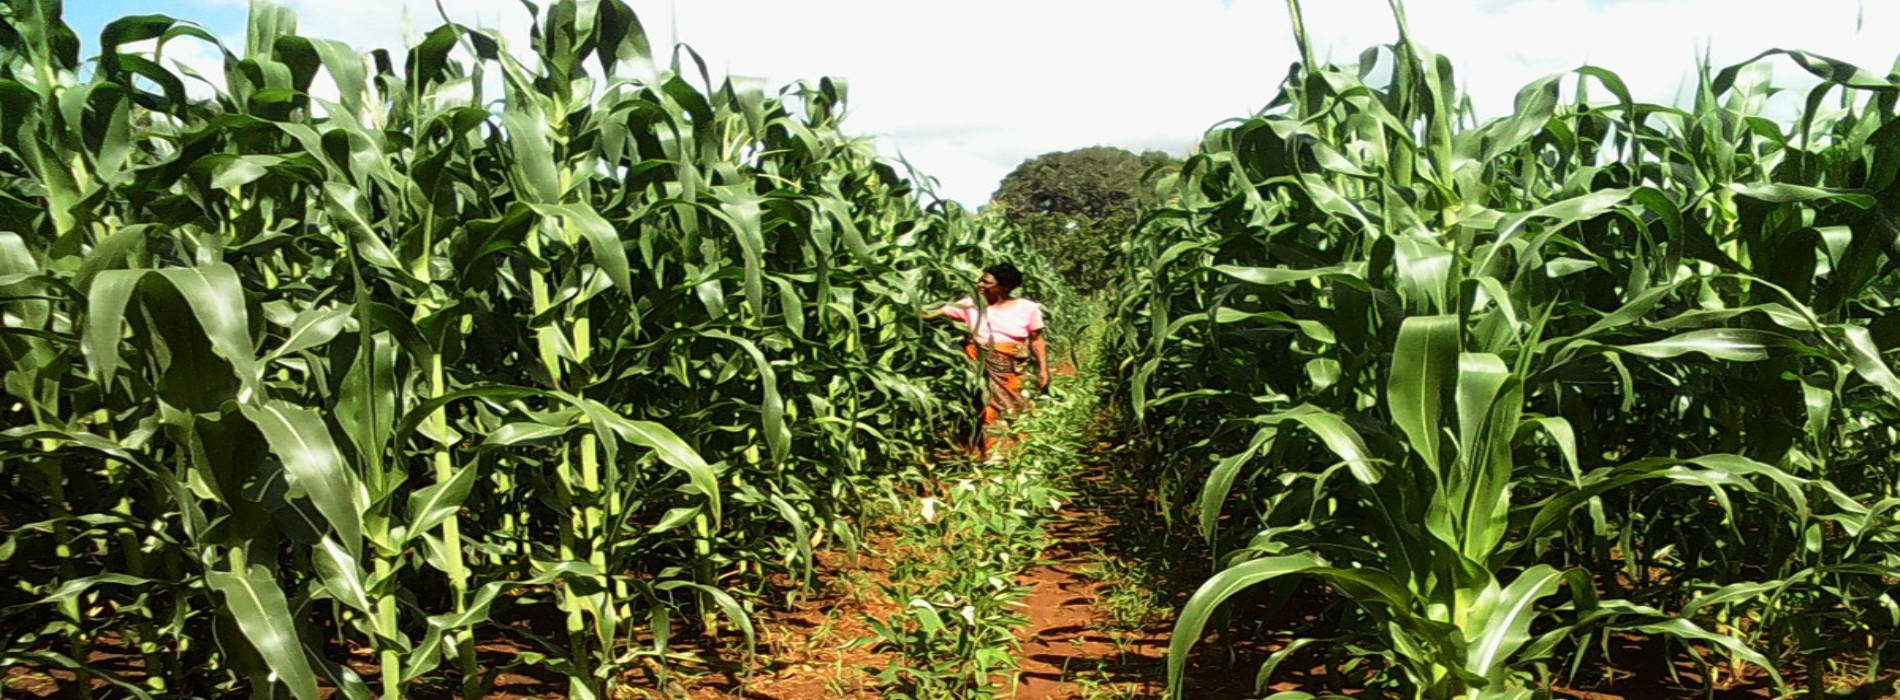 Boosting agricultural production in eastern and southern Africa